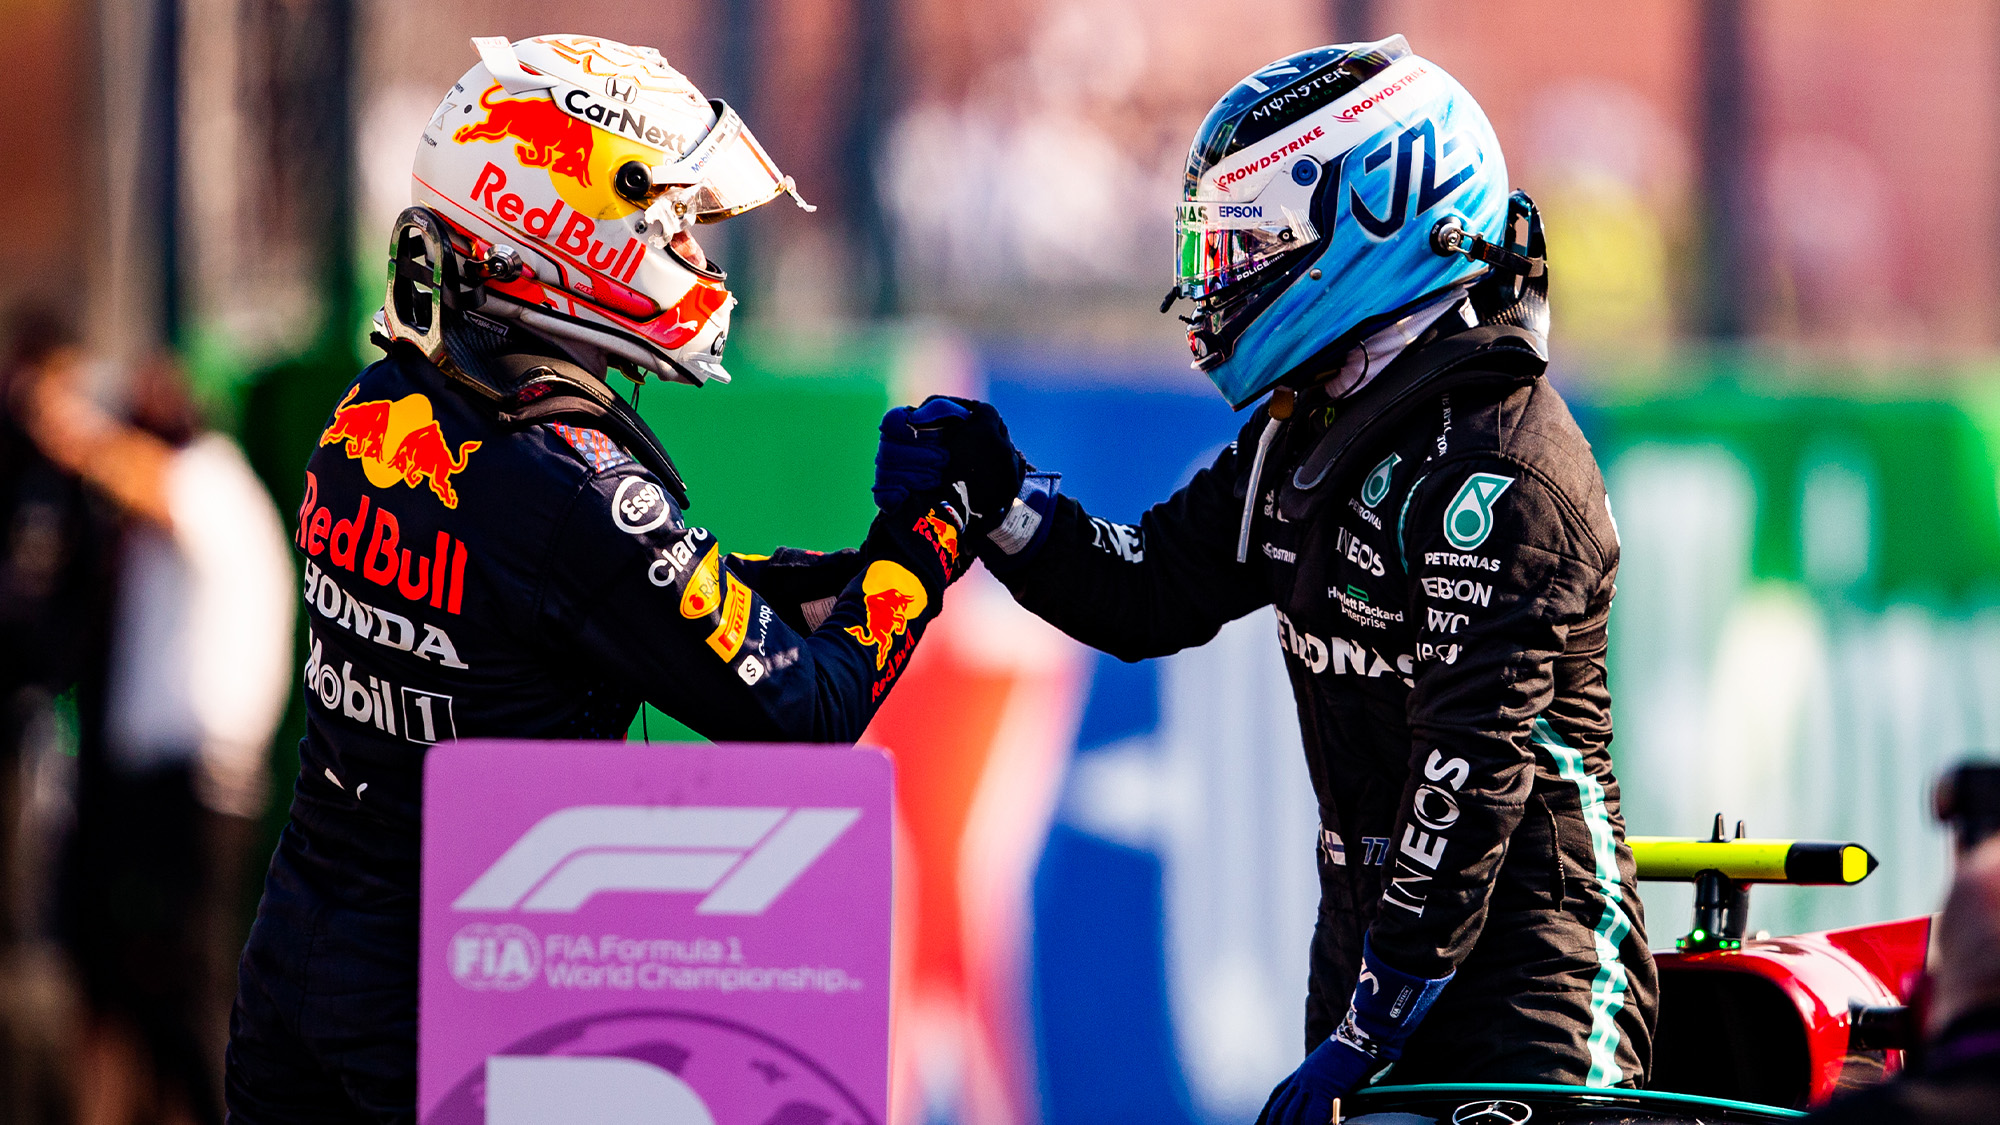 Verstappen shakes hands with Bottas after 2021 sprint qualifying at Monza